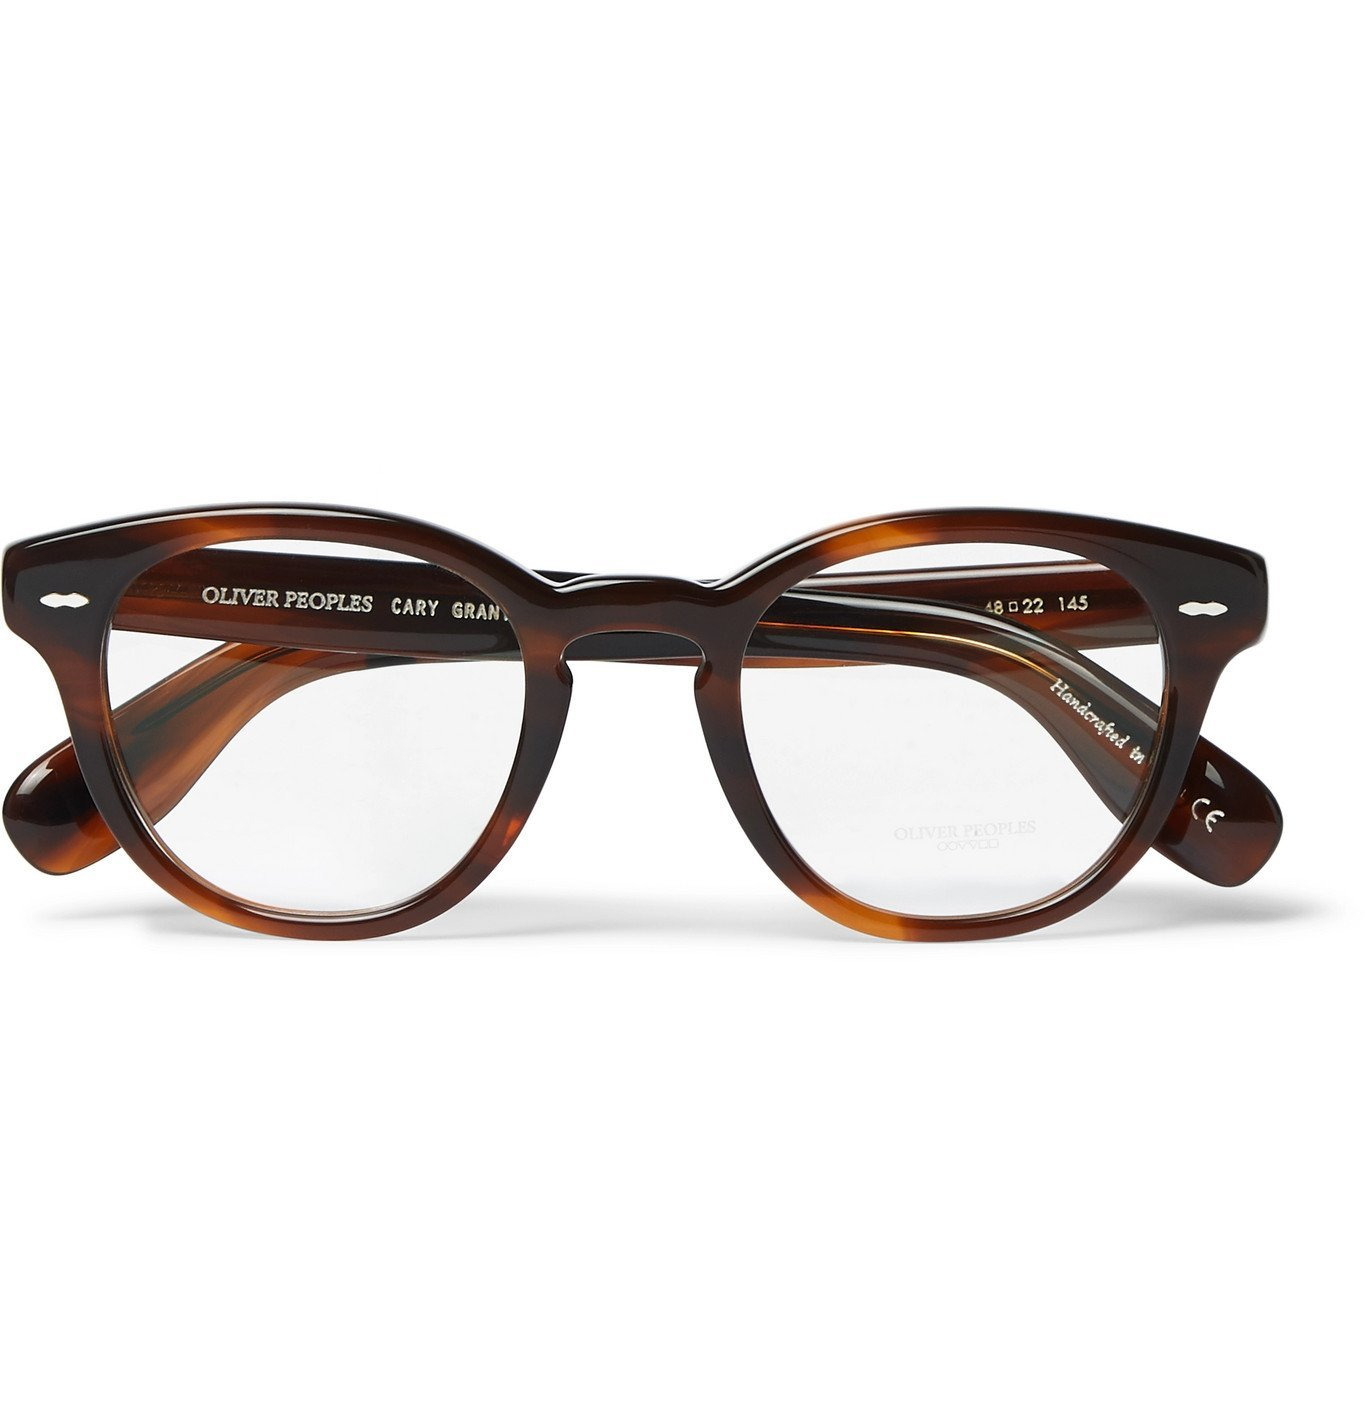 OLIVER PEOPLES - Cary Grant Round-Frame Tortoiseshell Acetate Optical Glasses - Brown